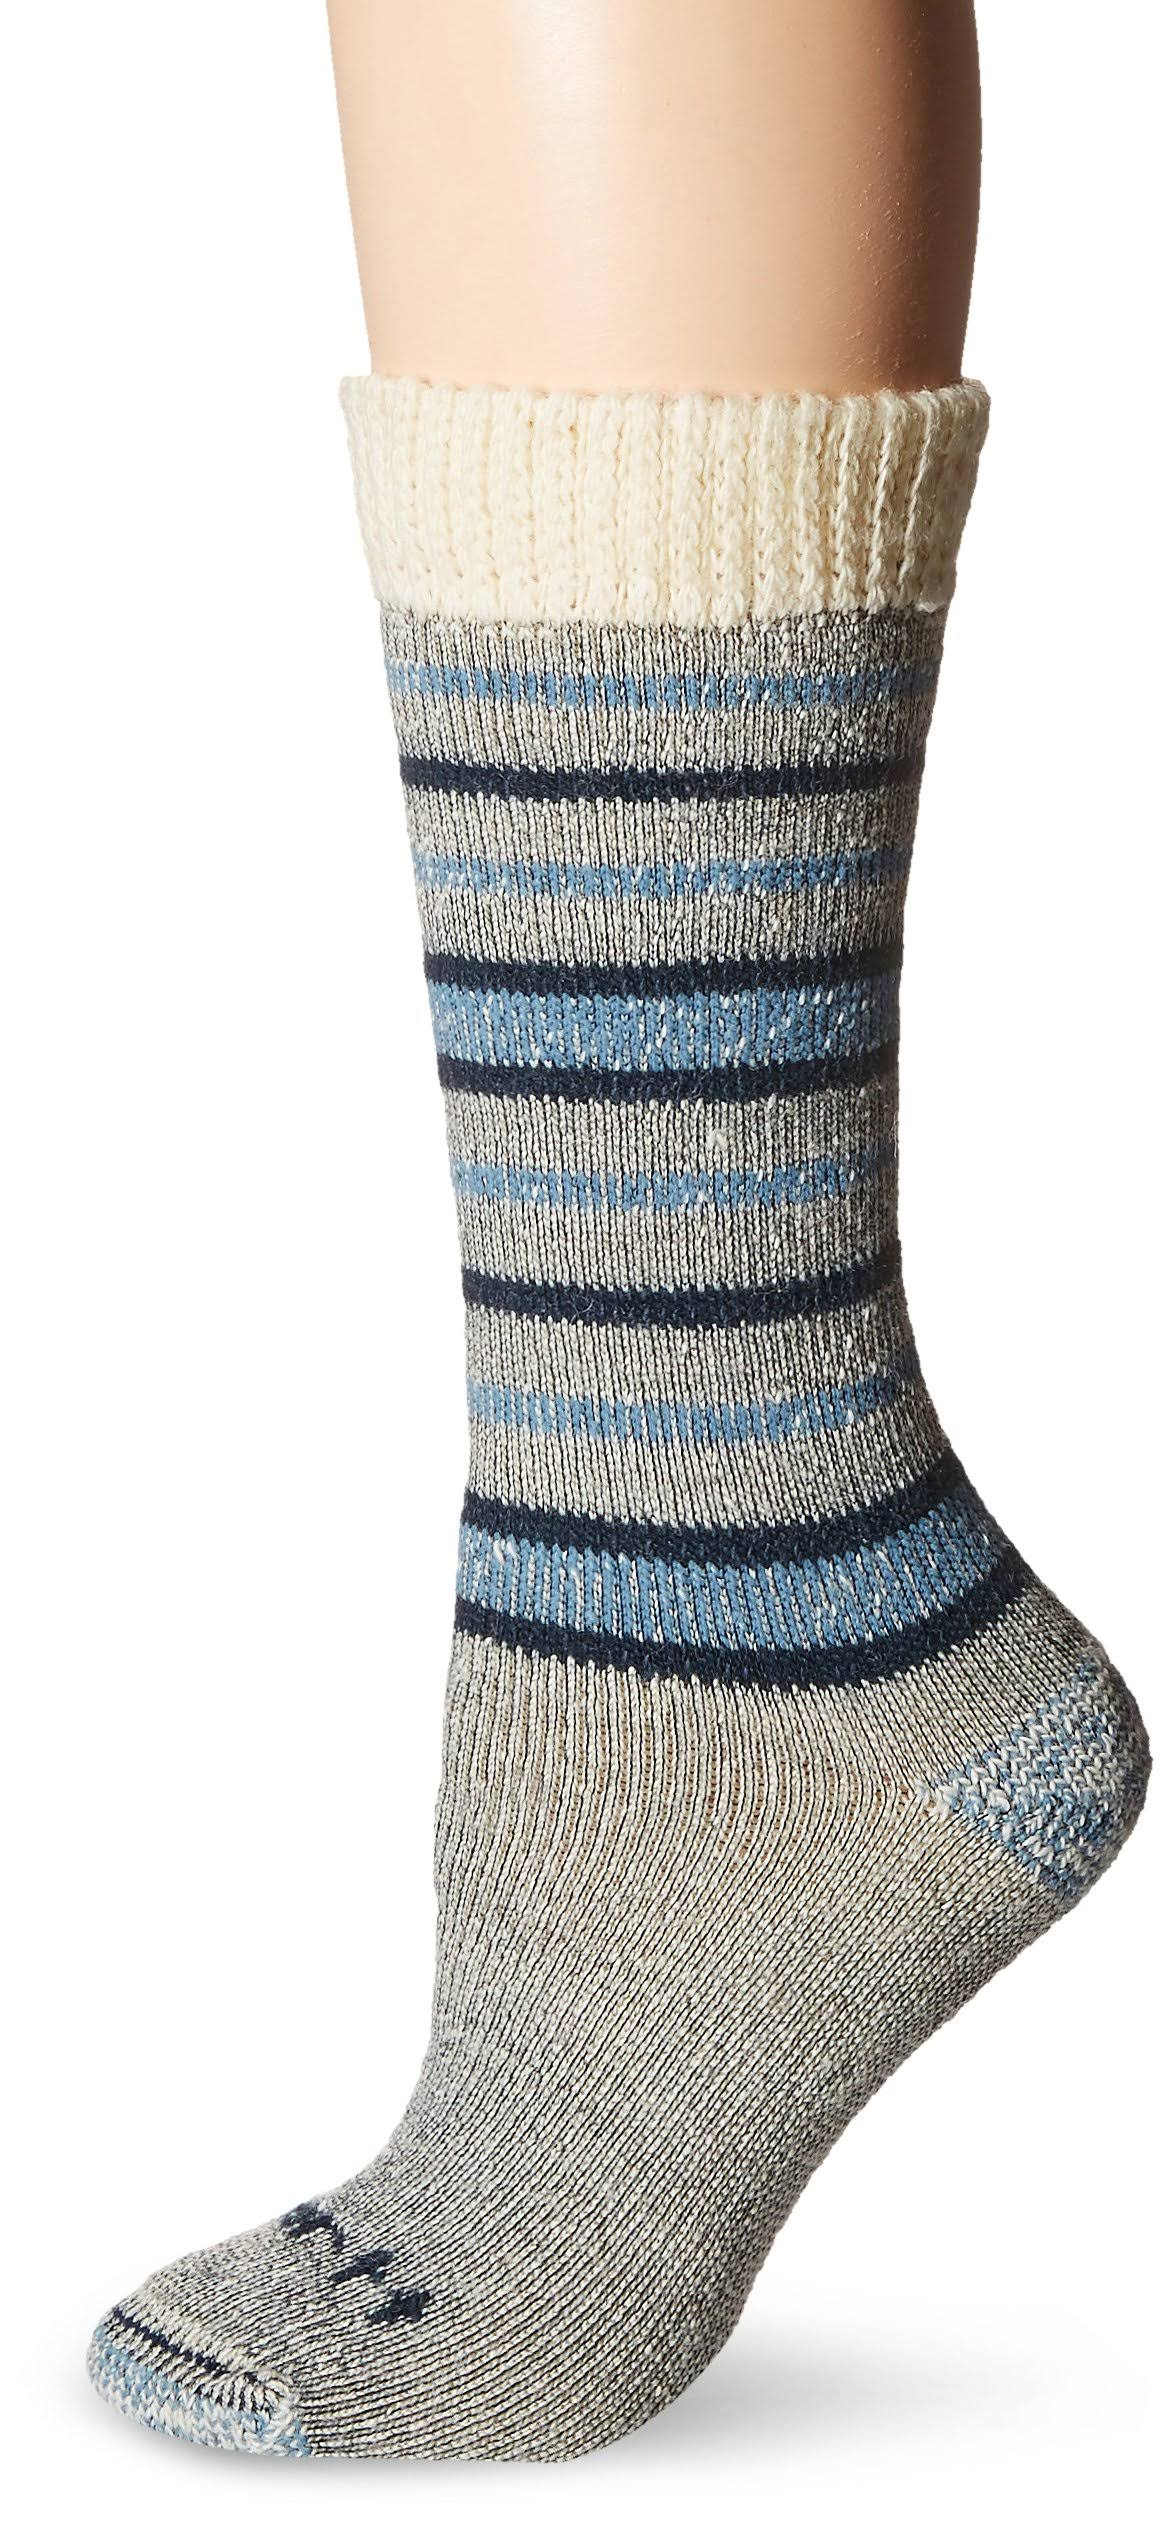 Carhartt Women's Heavyweight Wool Boot Socks